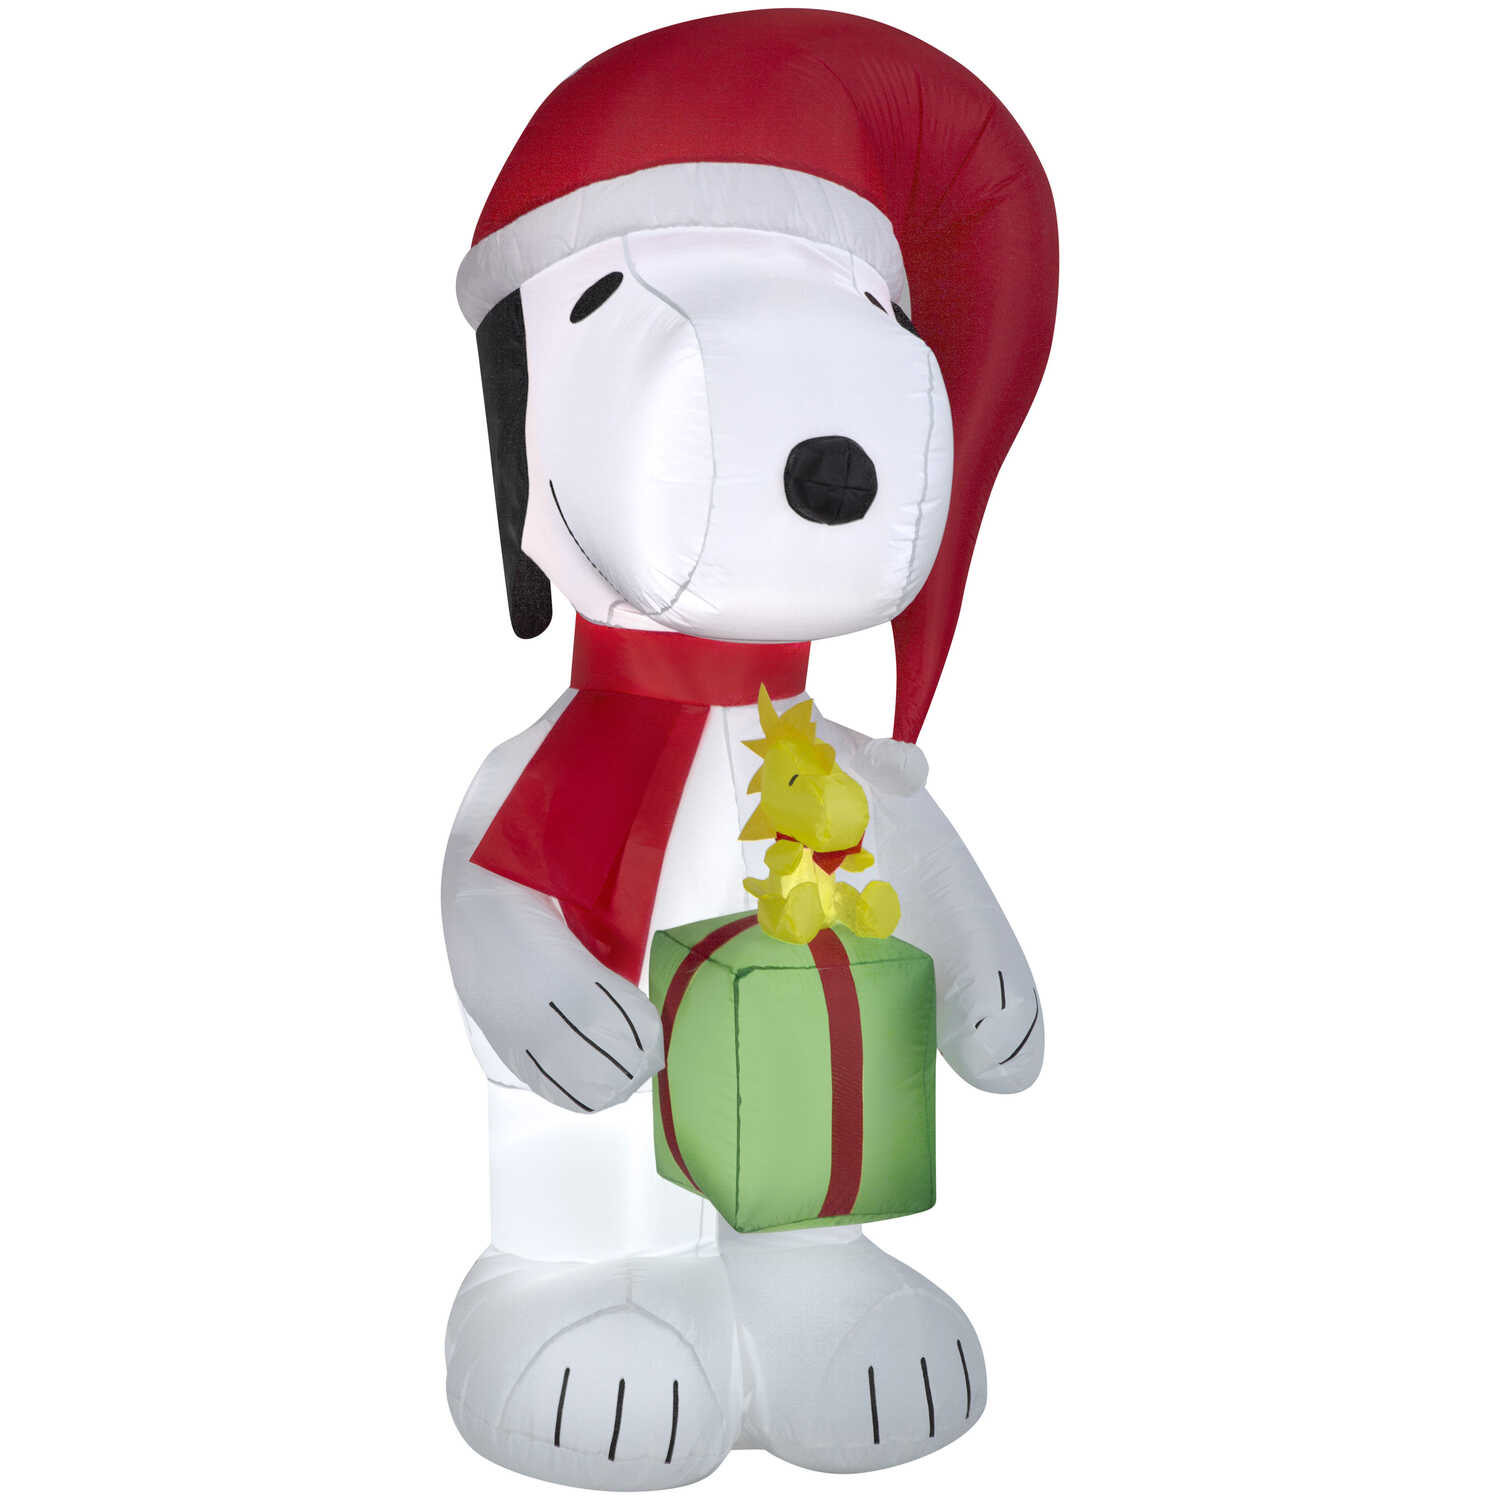 Gemmy  Snoopy with Present  Christmas Inflatable  Fabric  1 pk